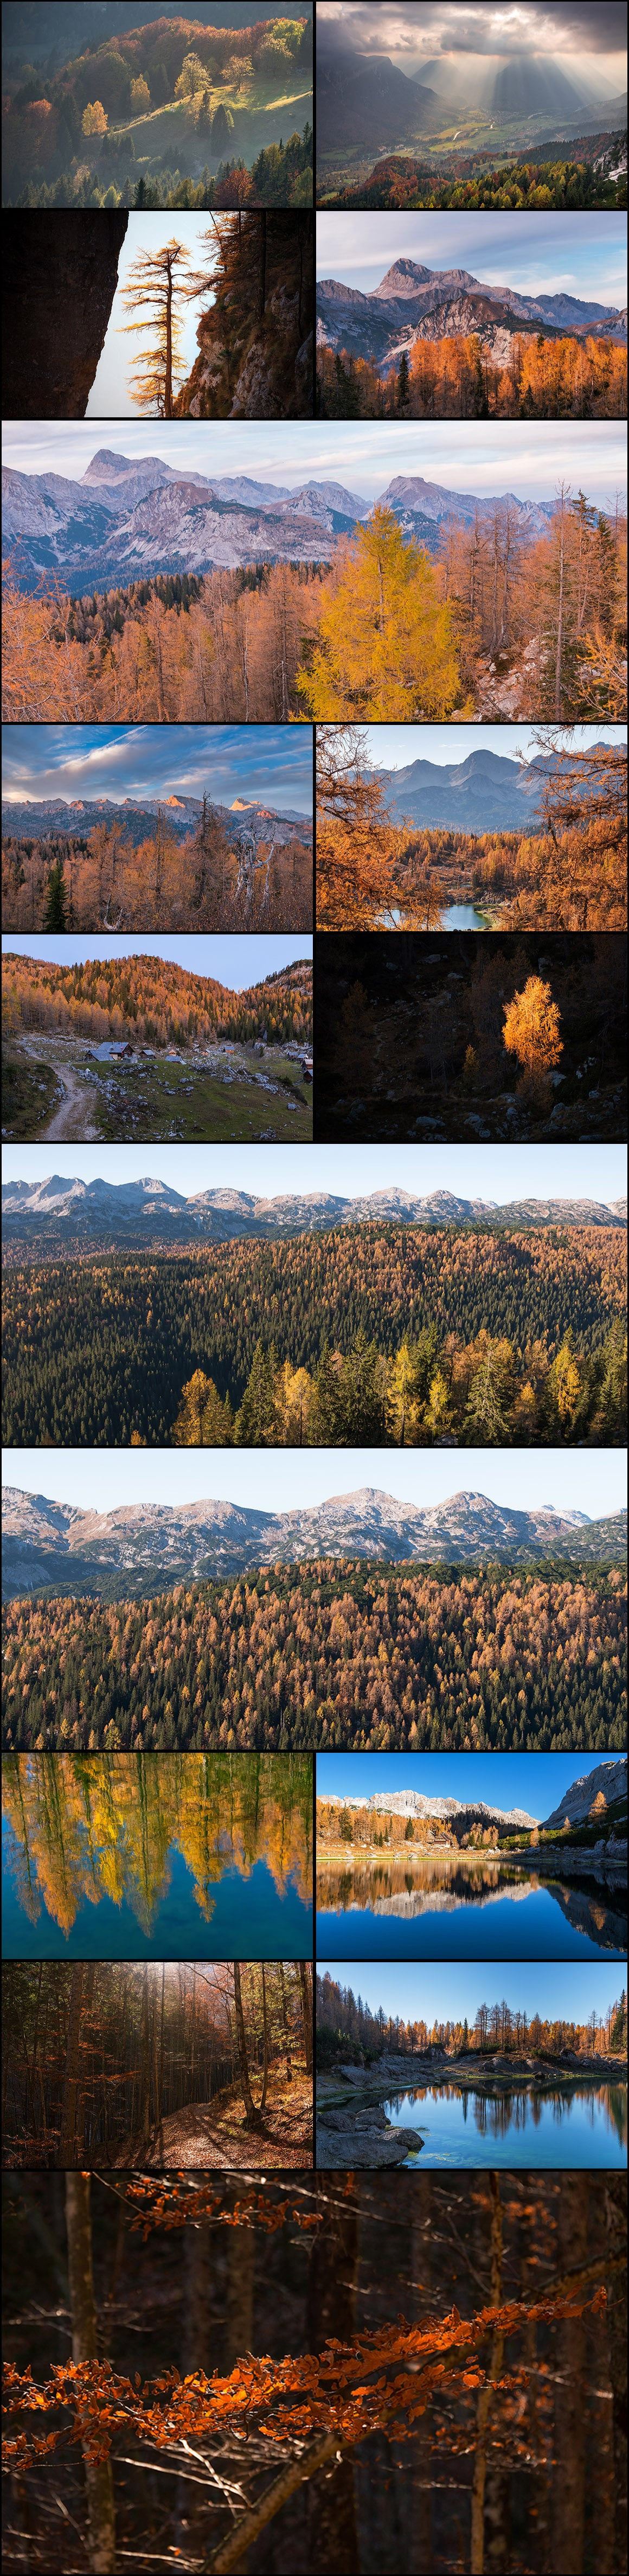 500+ Stock Images. Ultimate Photo Bundle  – $59 - PREVIEW autumn2